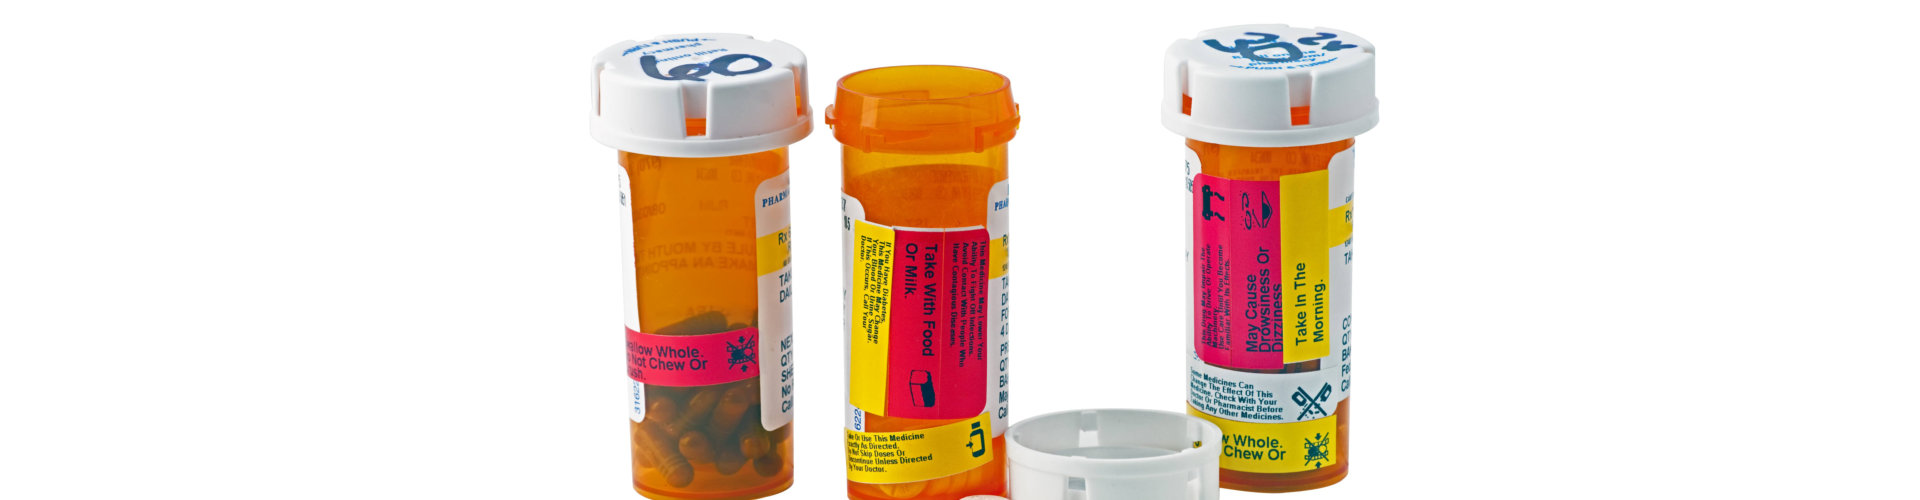 medication inside the container